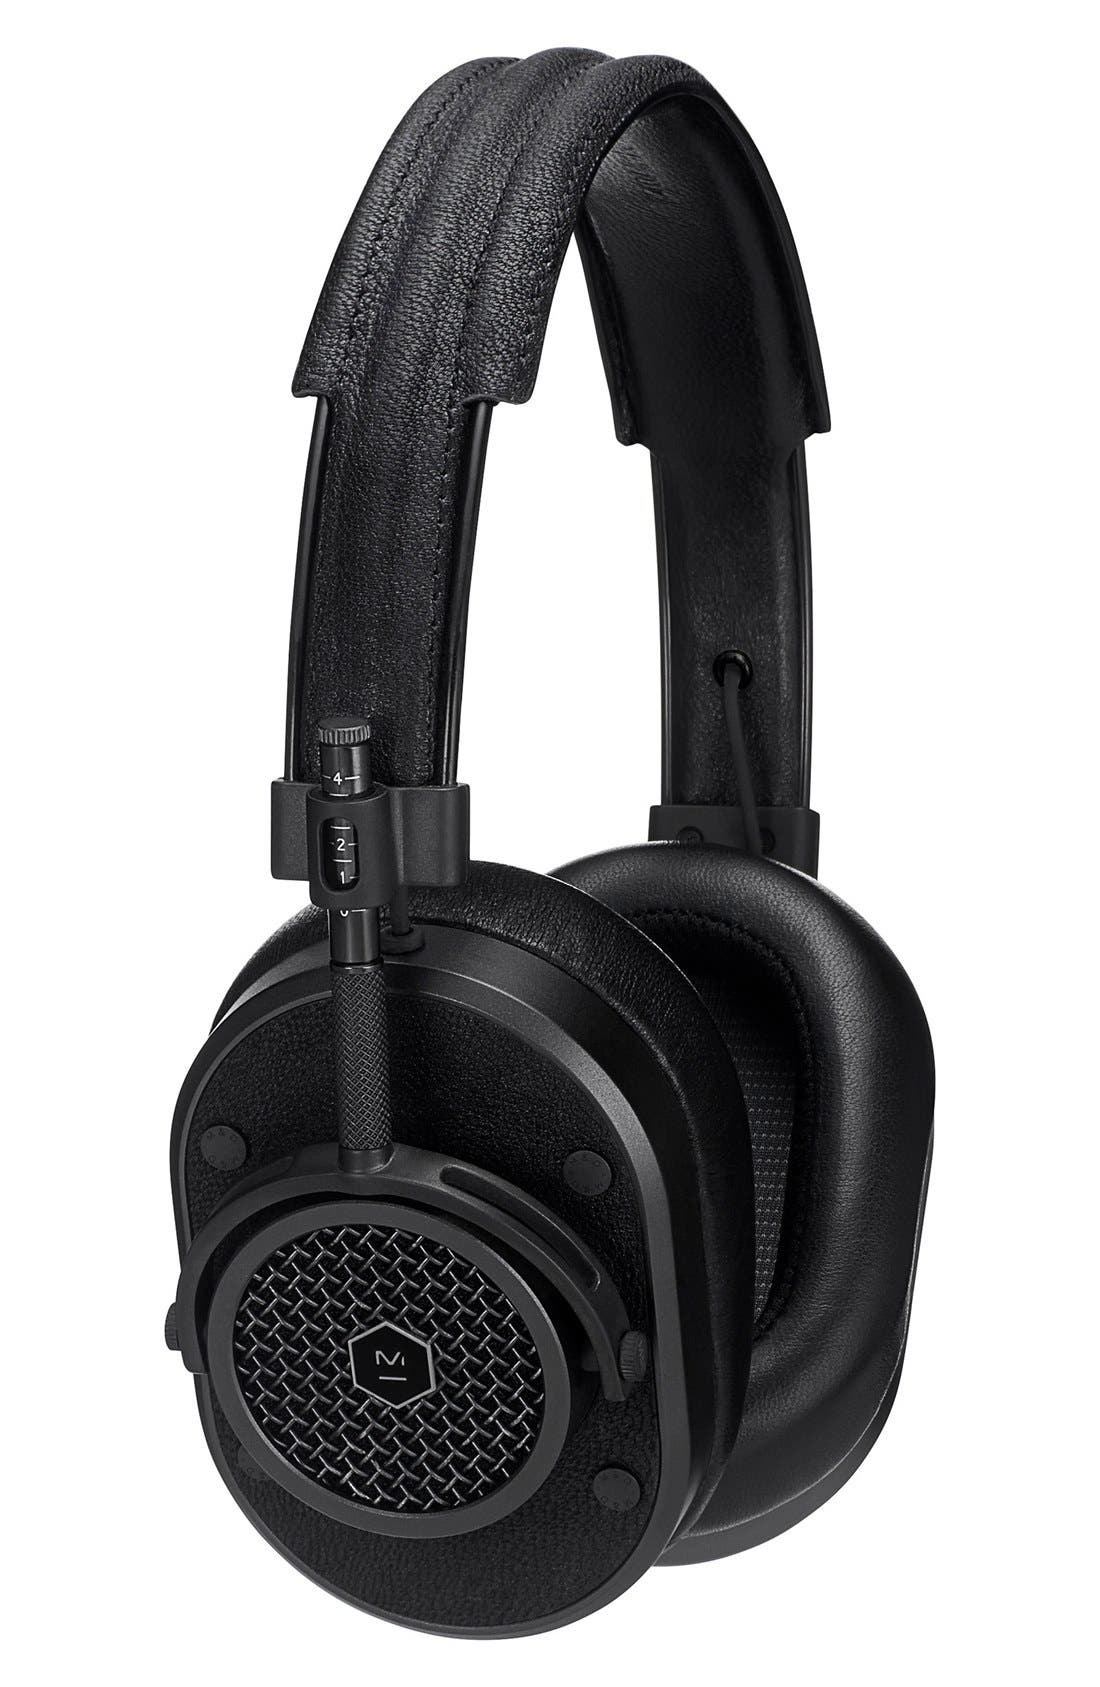 Alternate Image 1 Selected - Master & Dynamic 'MH40' Over Ear Headphones